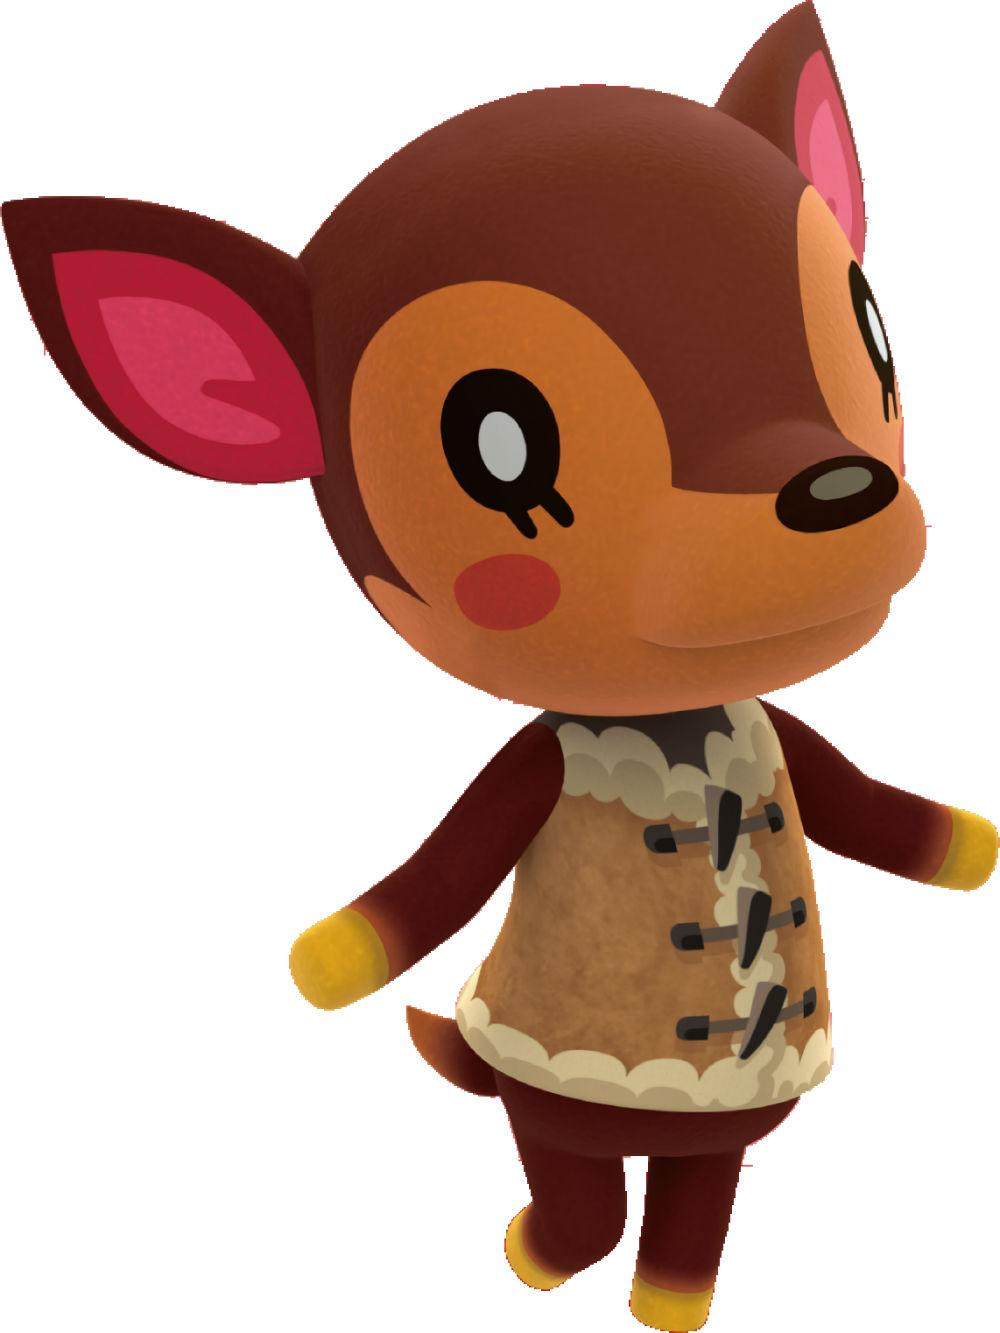 Acnl amiibo how to add friends as best friends